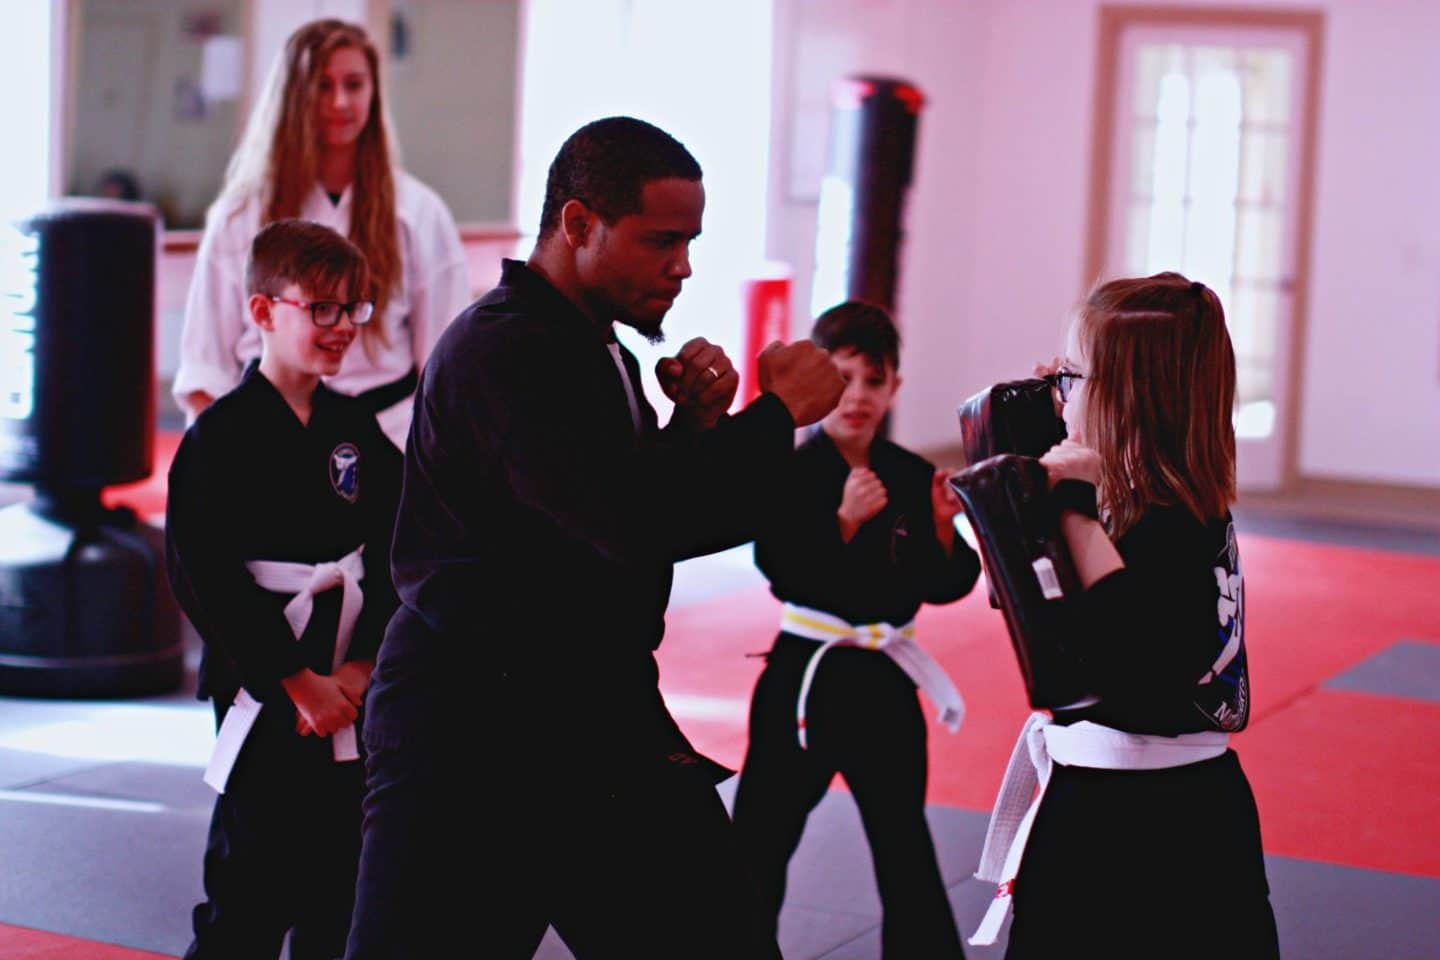 instructor showing proper striking technique to young students